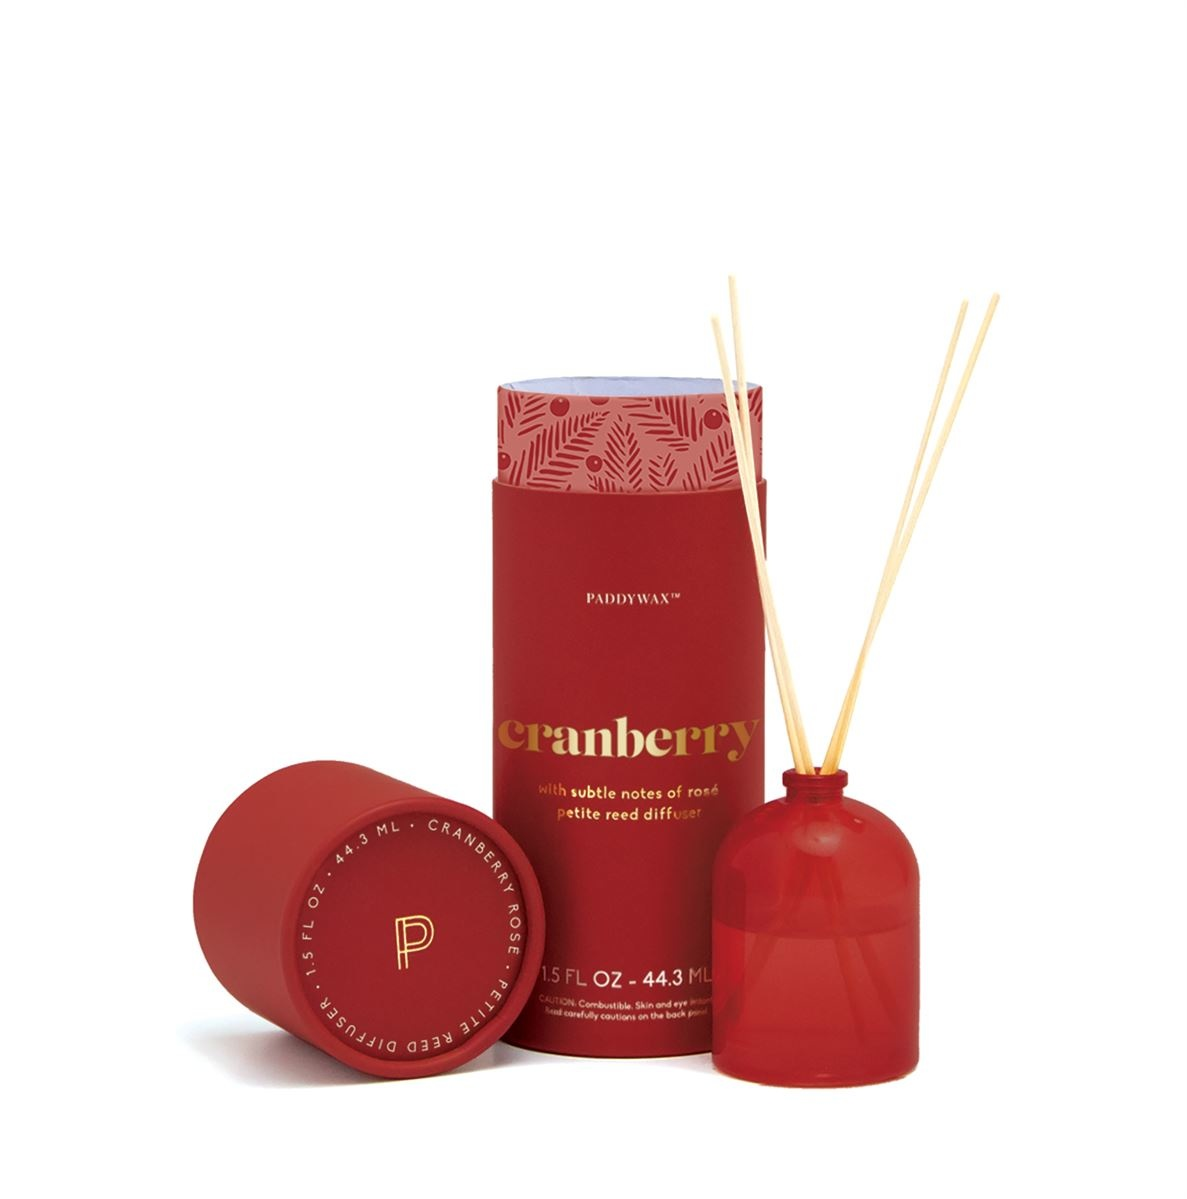 Paddywax - PA Cranberry Scent Reed Diffuser